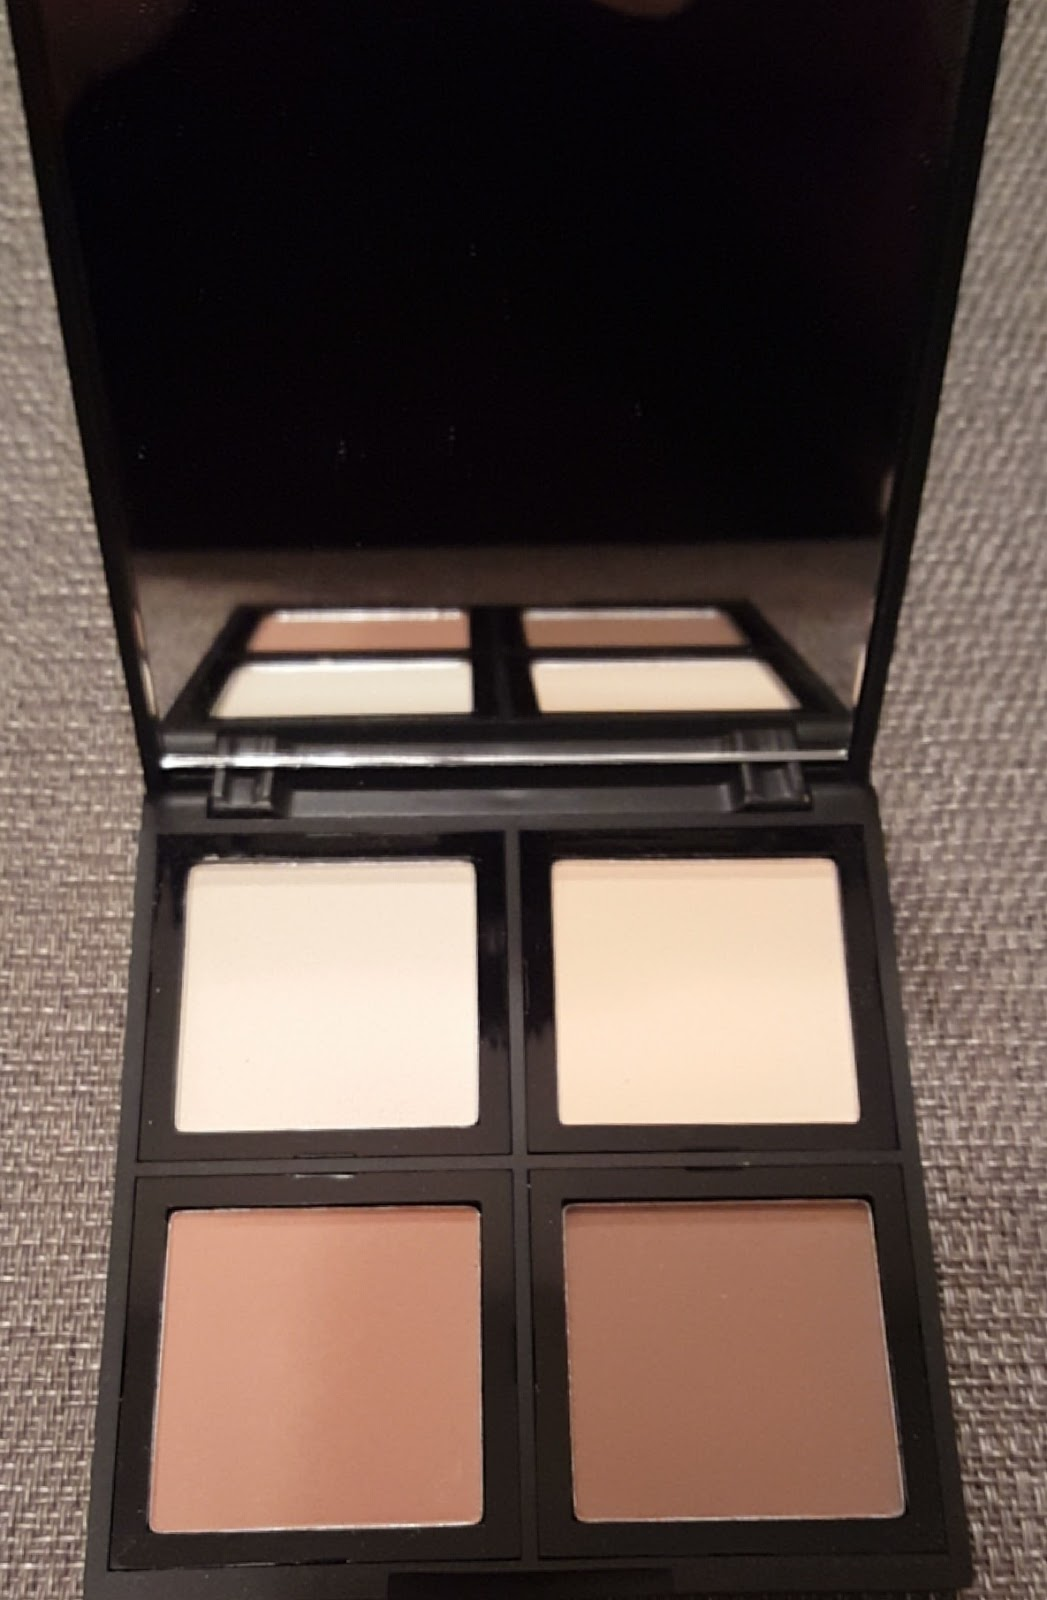 The Contour Palette A Sleek Square Design With A Big Mirror Inside Its The  Same Size As The Blush Palettes That They Sell The 4 Powders Inside Are  Also A